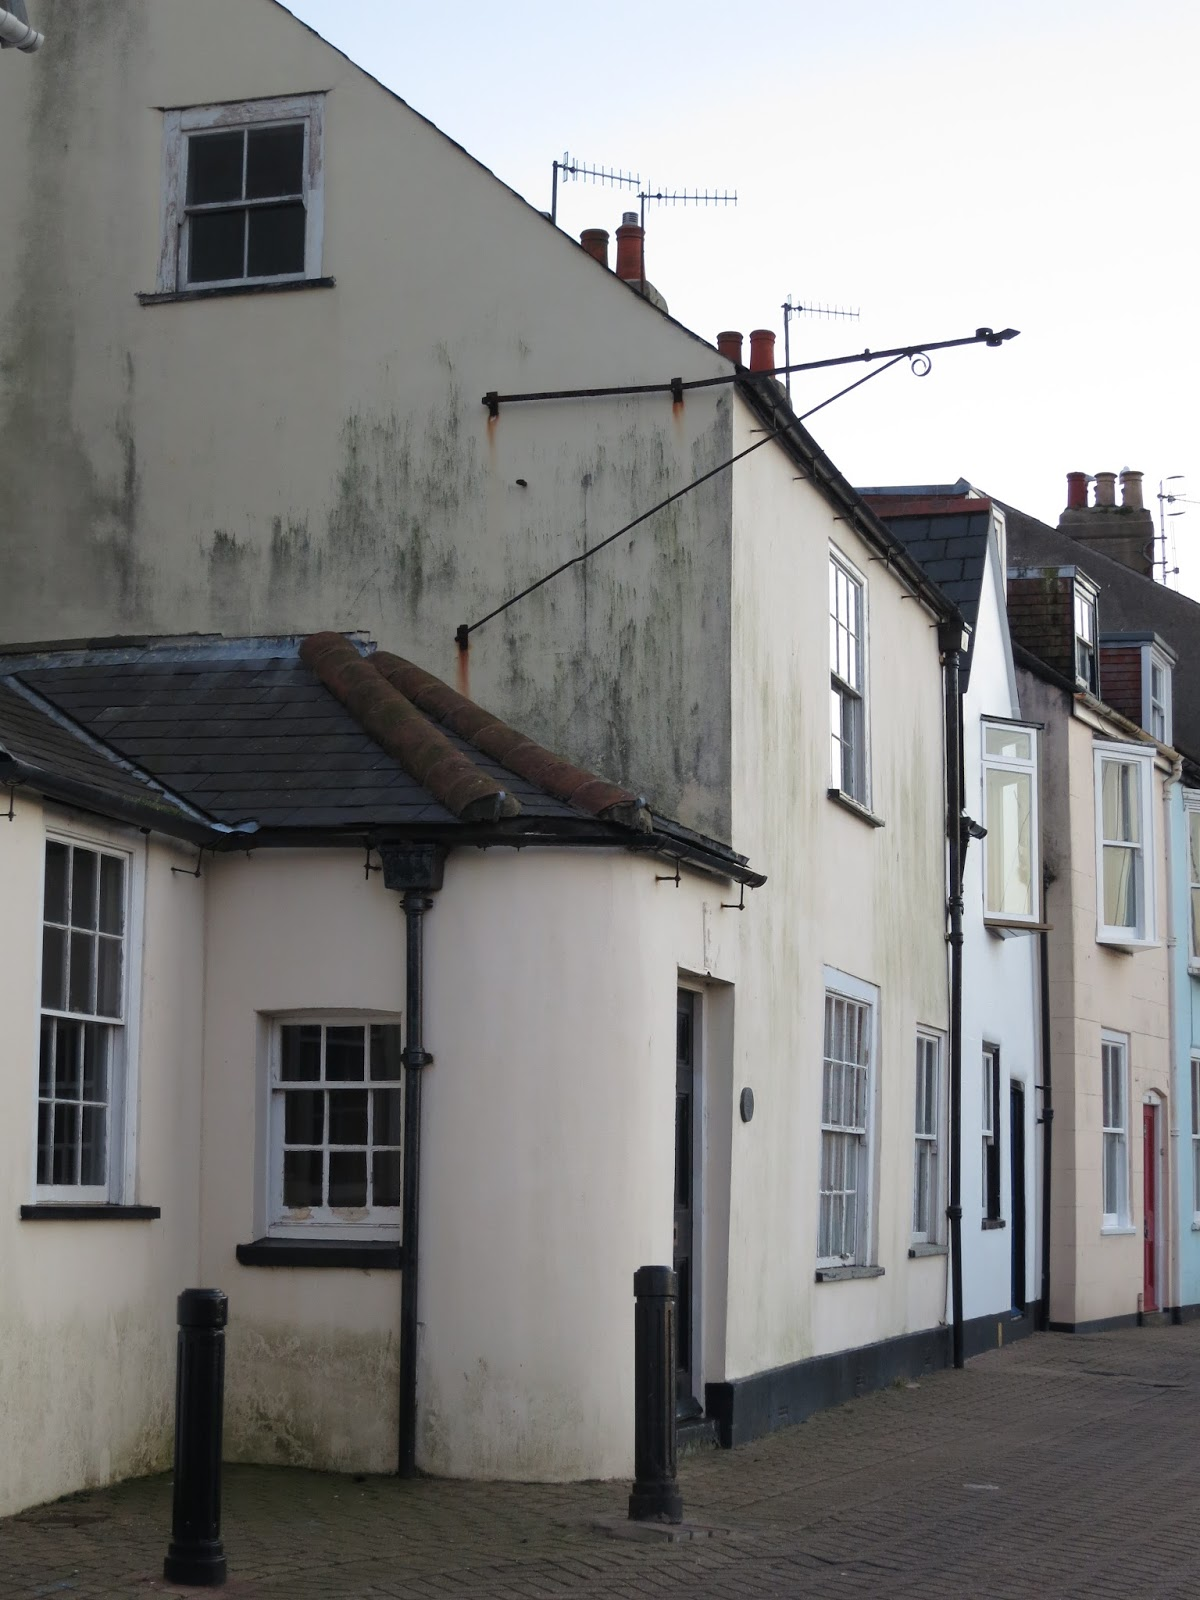 Row of old houses.